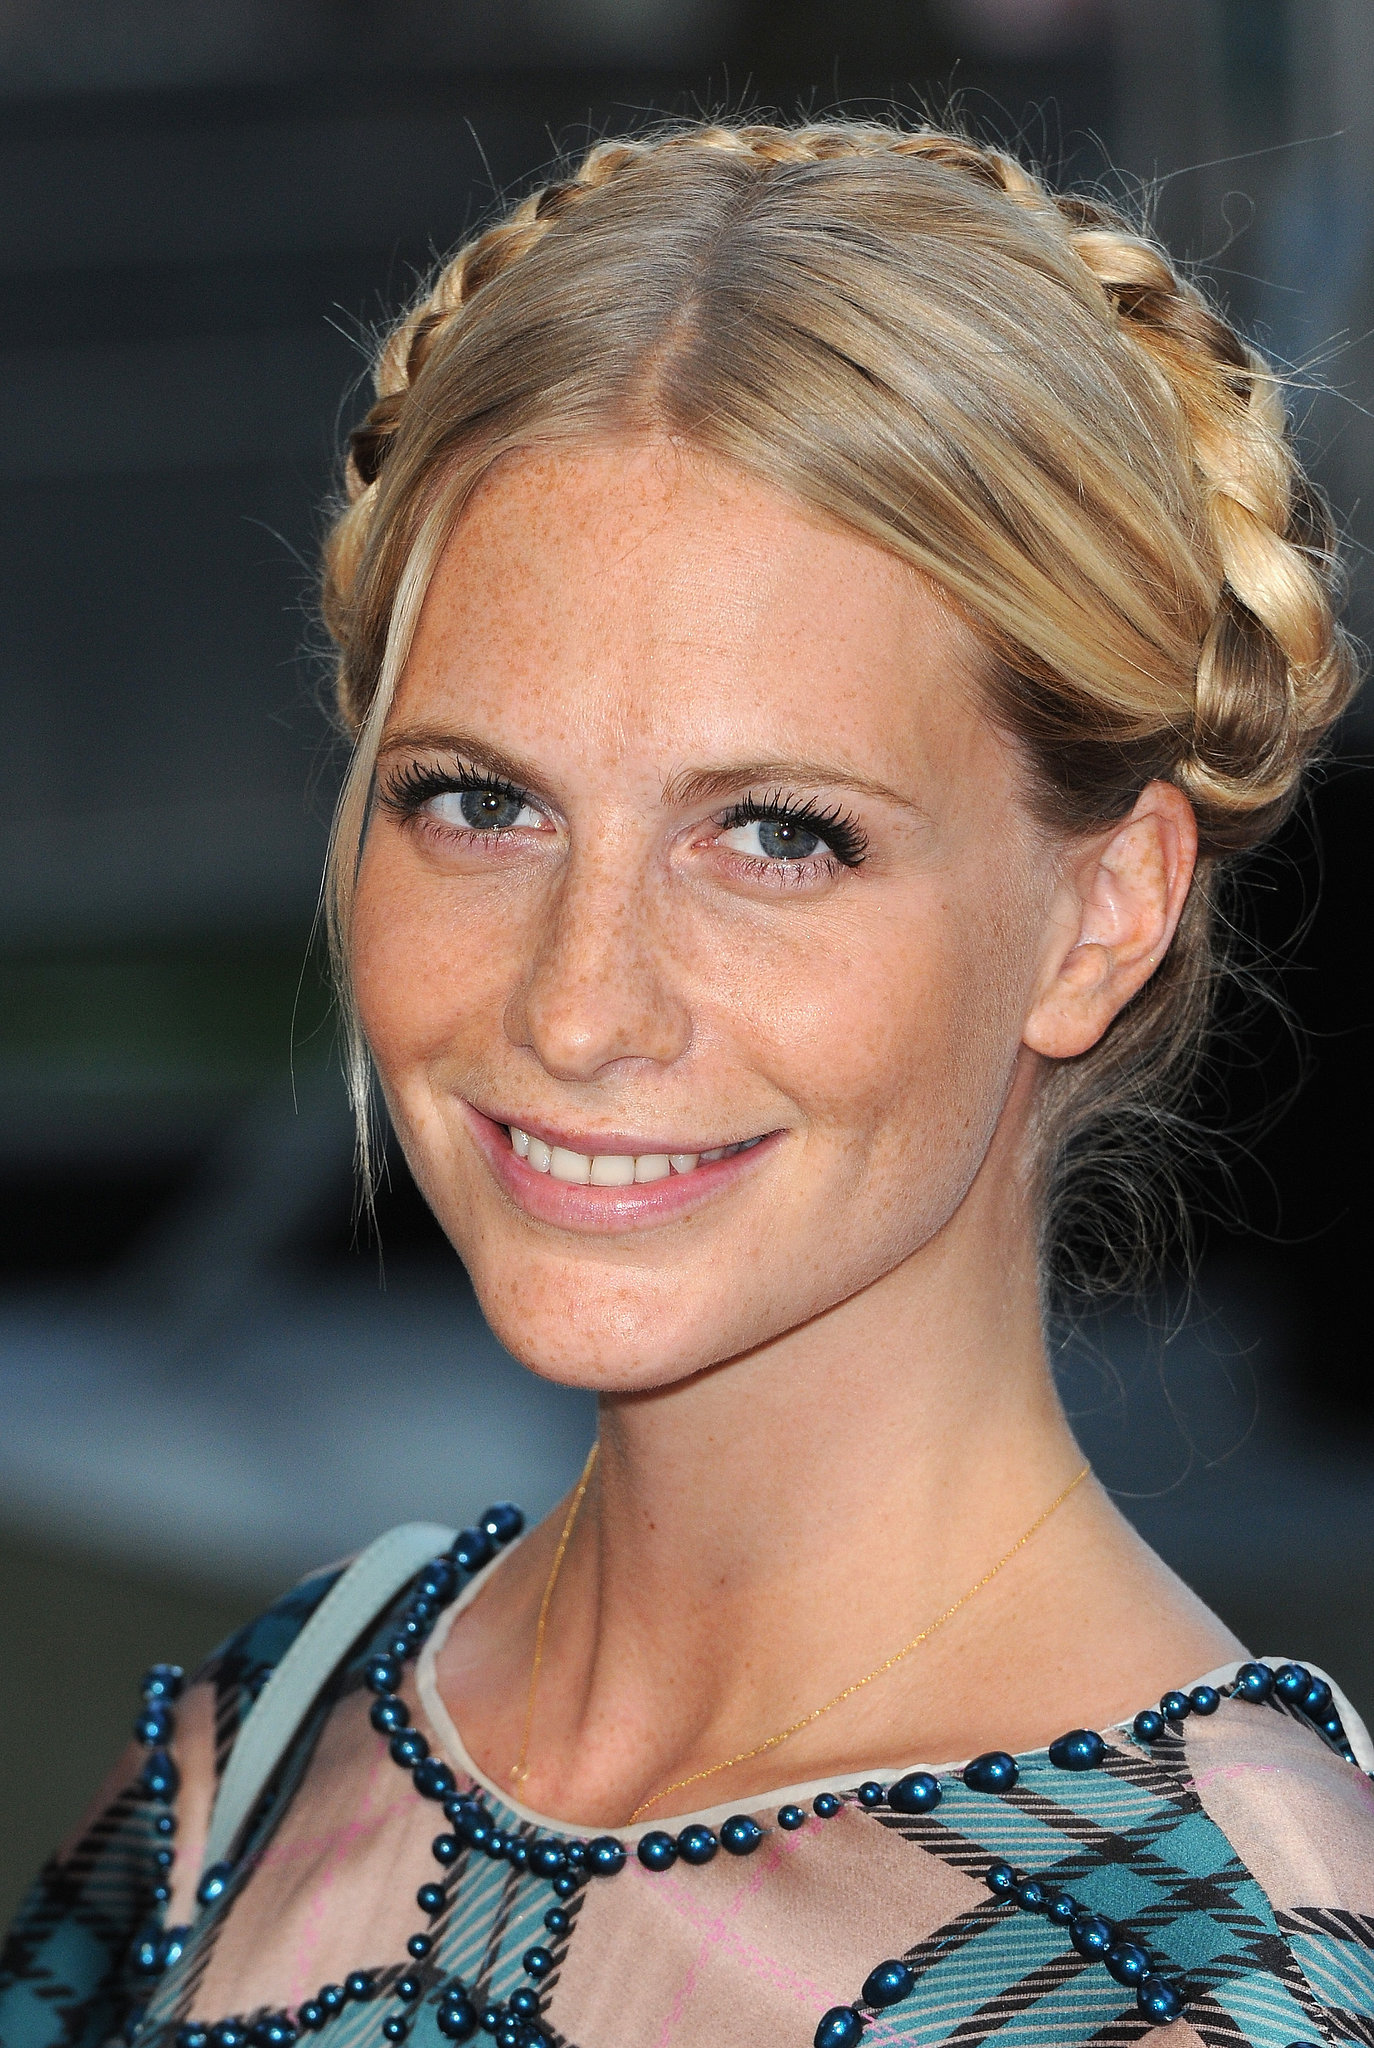 Poppy Delevingne Opted To Keep Her Milkmaid Braids Smooth